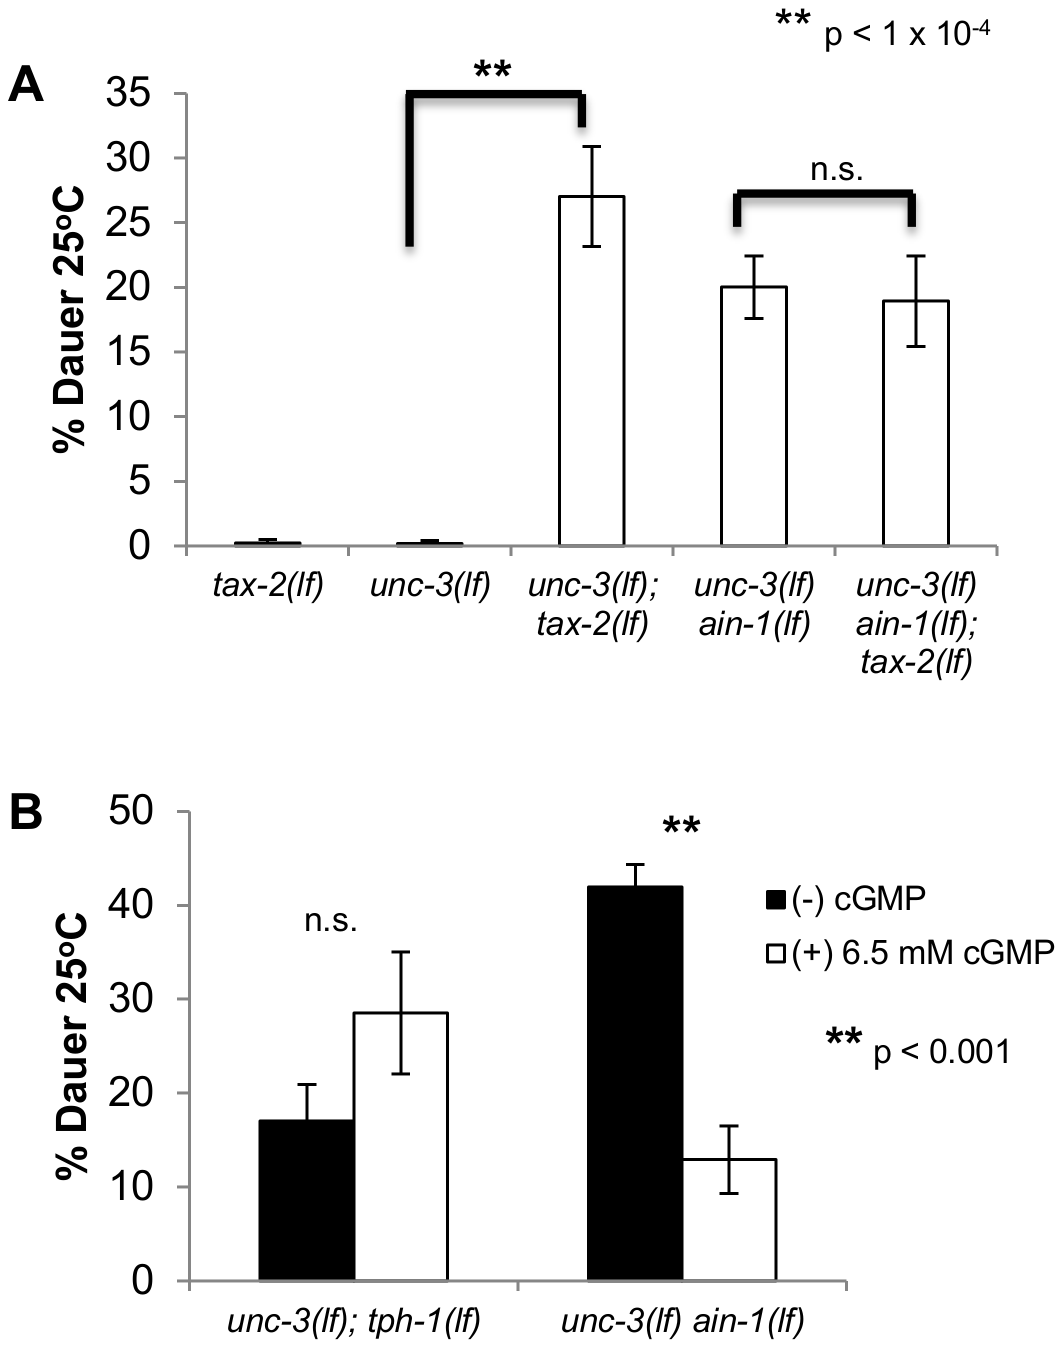 miRNAs may modulate cGMP signaling.